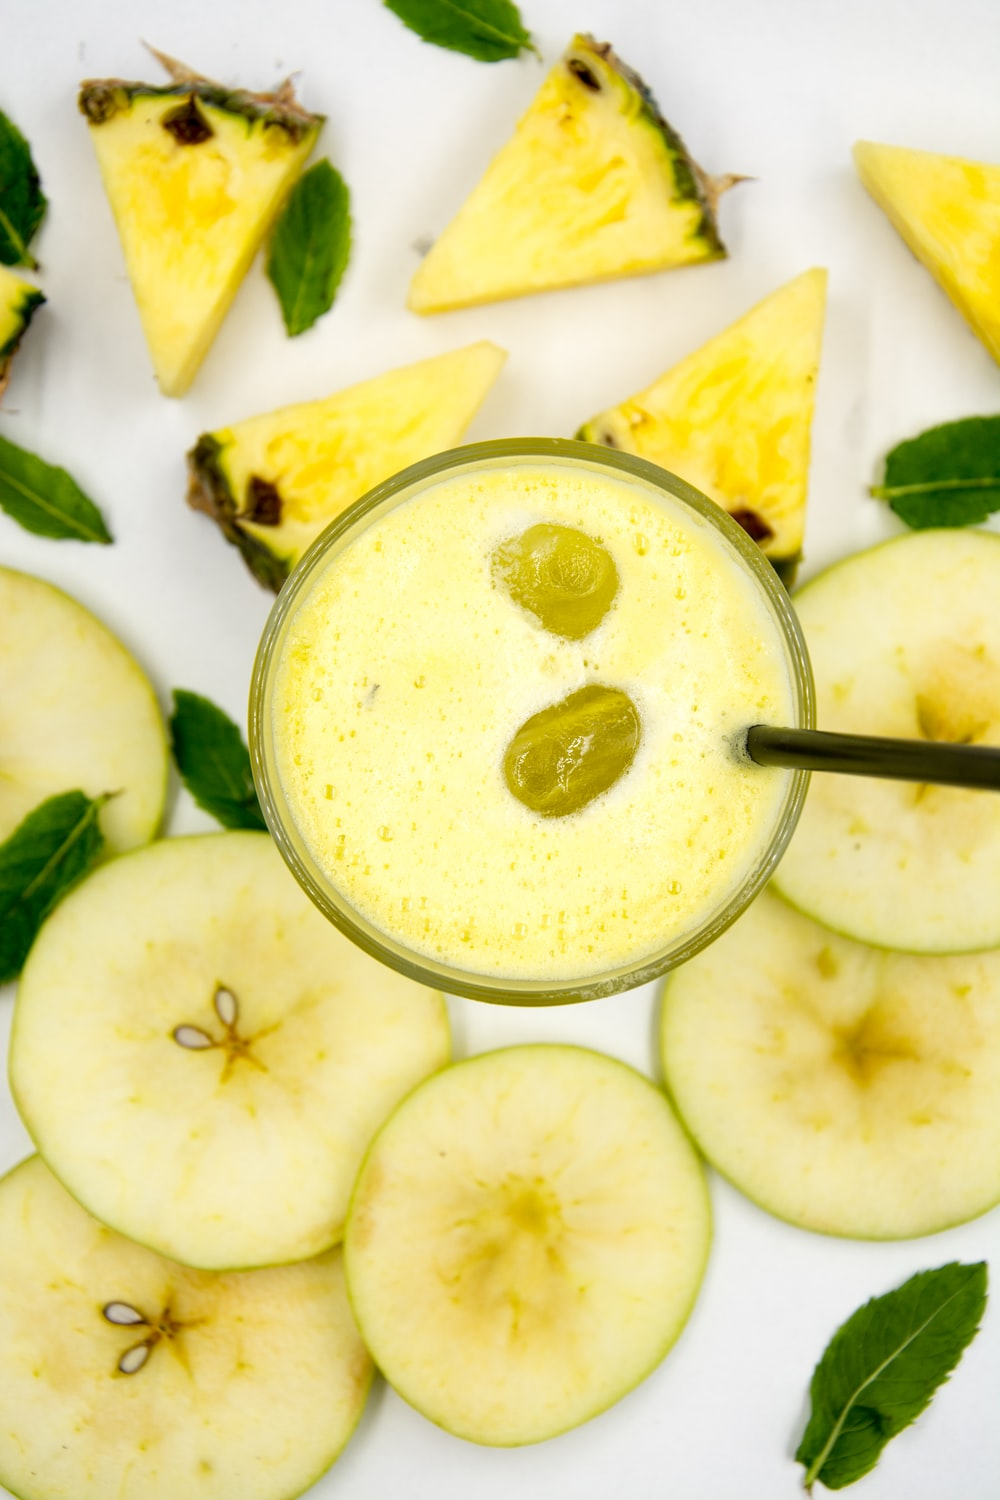 pineapple juice close-up photography